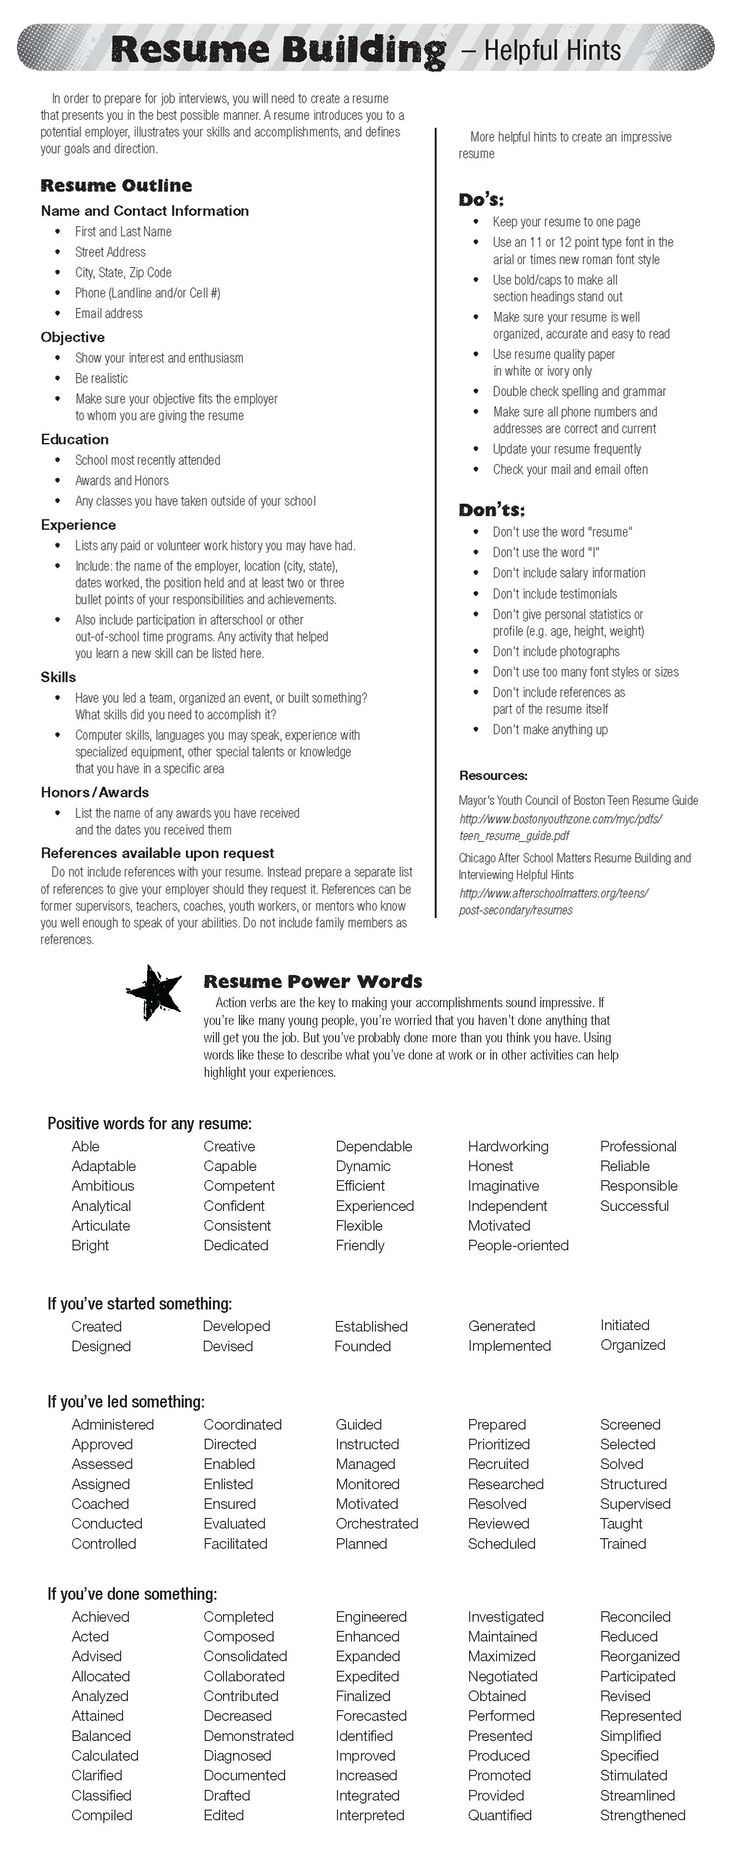 Opposenewapstandardsus  Mesmerizing  Ideas About Resume On Pinterest  Cv Format Resume Cv And  With Glamorous  Ideas About Resume On Pinterest  Cv Format Resume Cv And Resume Templates With Nice Resume Format Samples Also Creative Director Resume In Addition How To Write A College Resume And Resume Interests As Well As Staff Accountant Resume Additionally Free Resume Examples From Pinterestcom With Opposenewapstandardsus  Glamorous  Ideas About Resume On Pinterest  Cv Format Resume Cv And  With Nice  Ideas About Resume On Pinterest  Cv Format Resume Cv And Resume Templates And Mesmerizing Resume Format Samples Also Creative Director Resume In Addition How To Write A College Resume From Pinterestcom